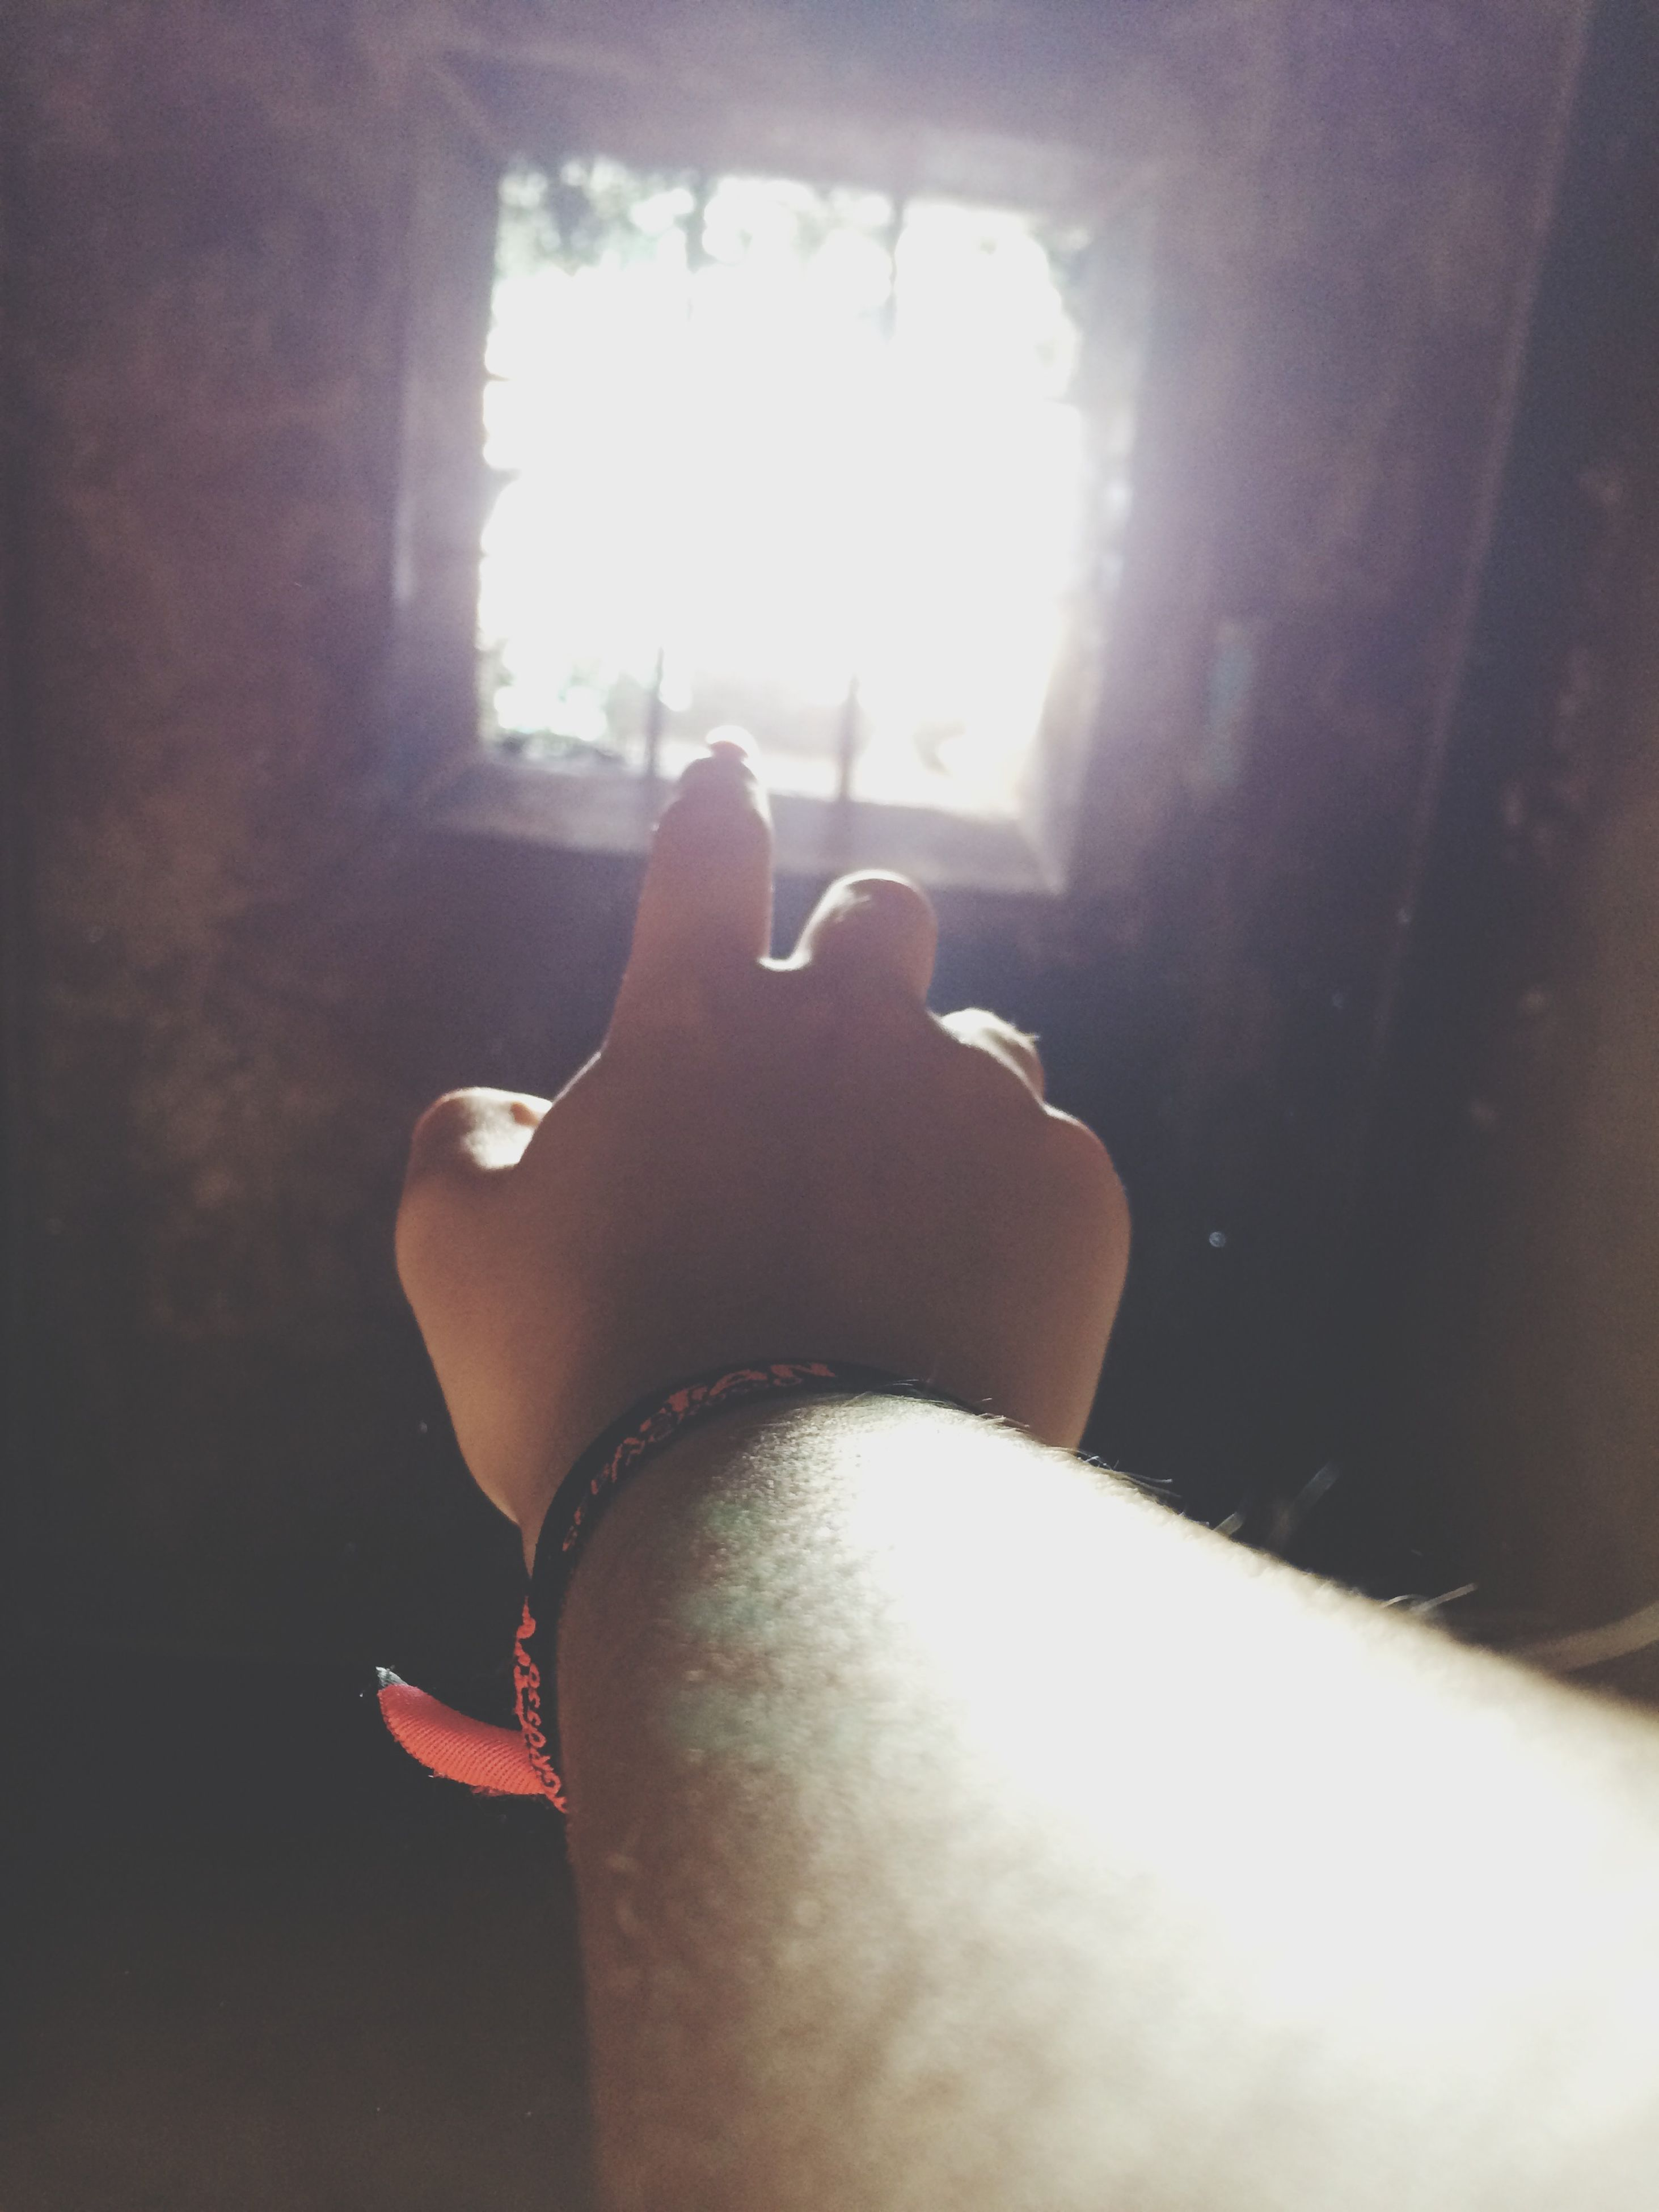 indoors, personal perspective, part of, home interior, person, sunlight, lifestyles, window, close-up, low section, domestic room, relaxation, cropped, unrecognizable person, human finger